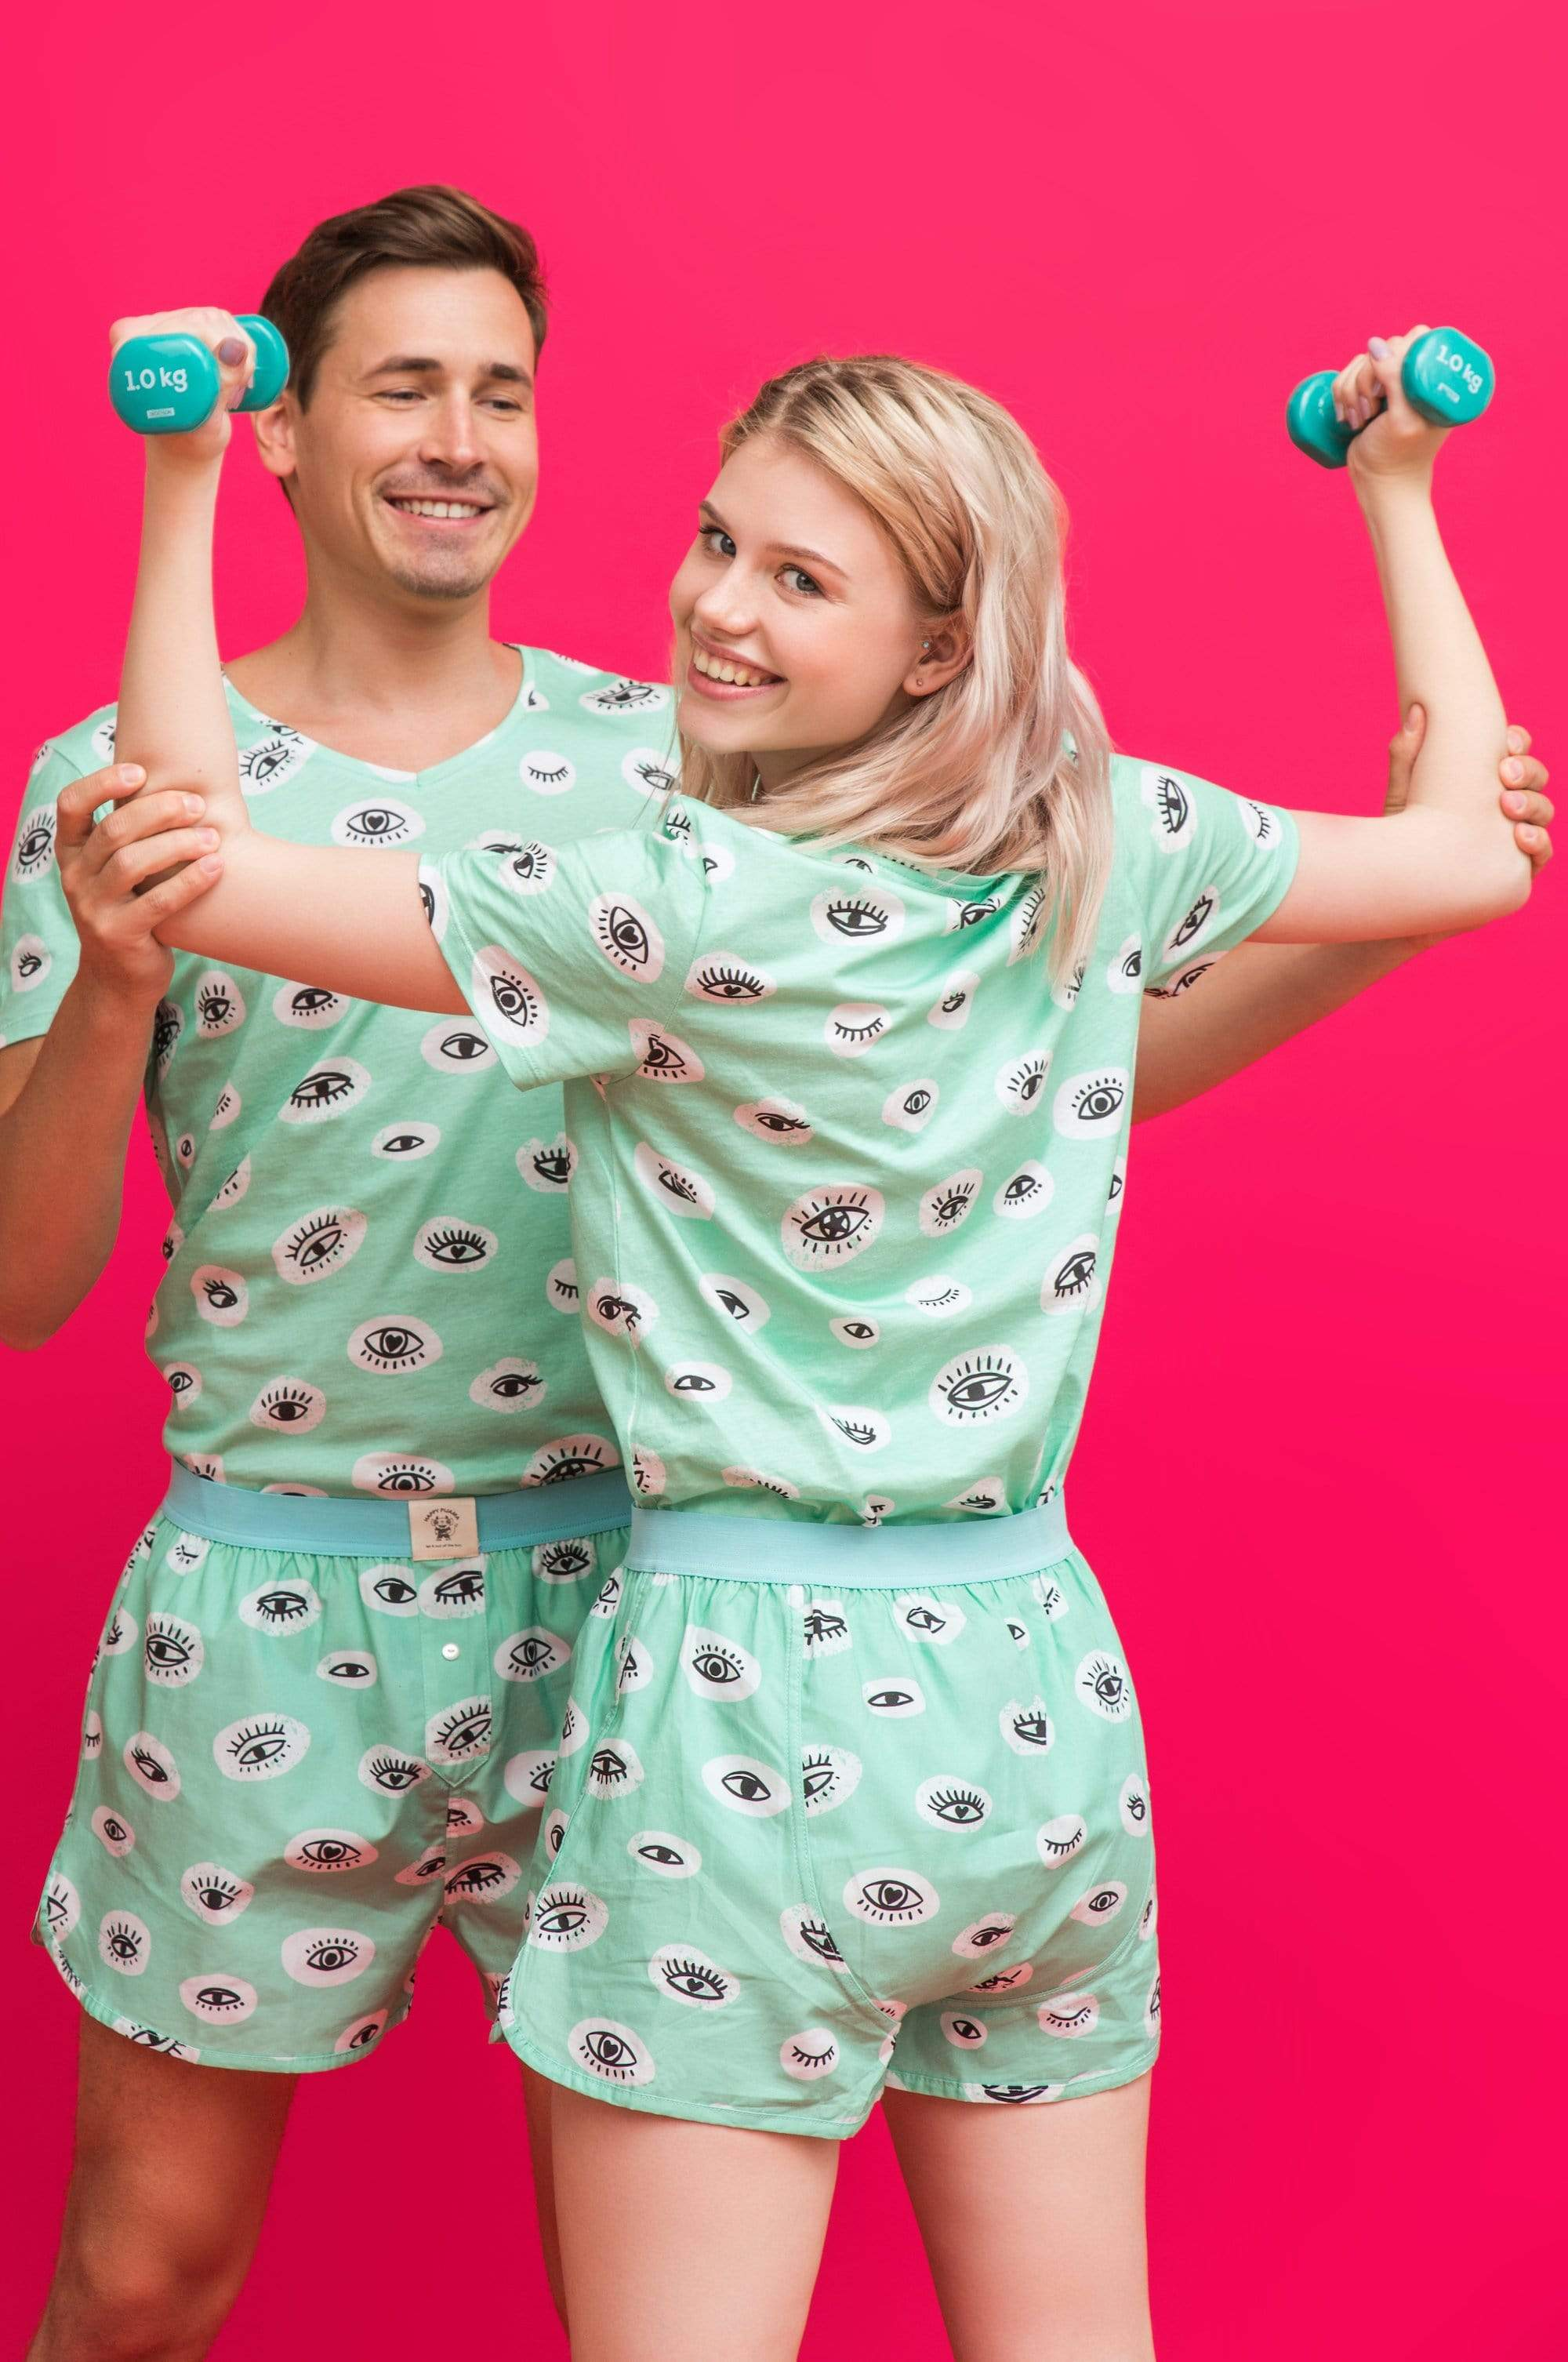 TATTINES pyjama de nuit & loungewear - These Eyes mode durable mode éthique